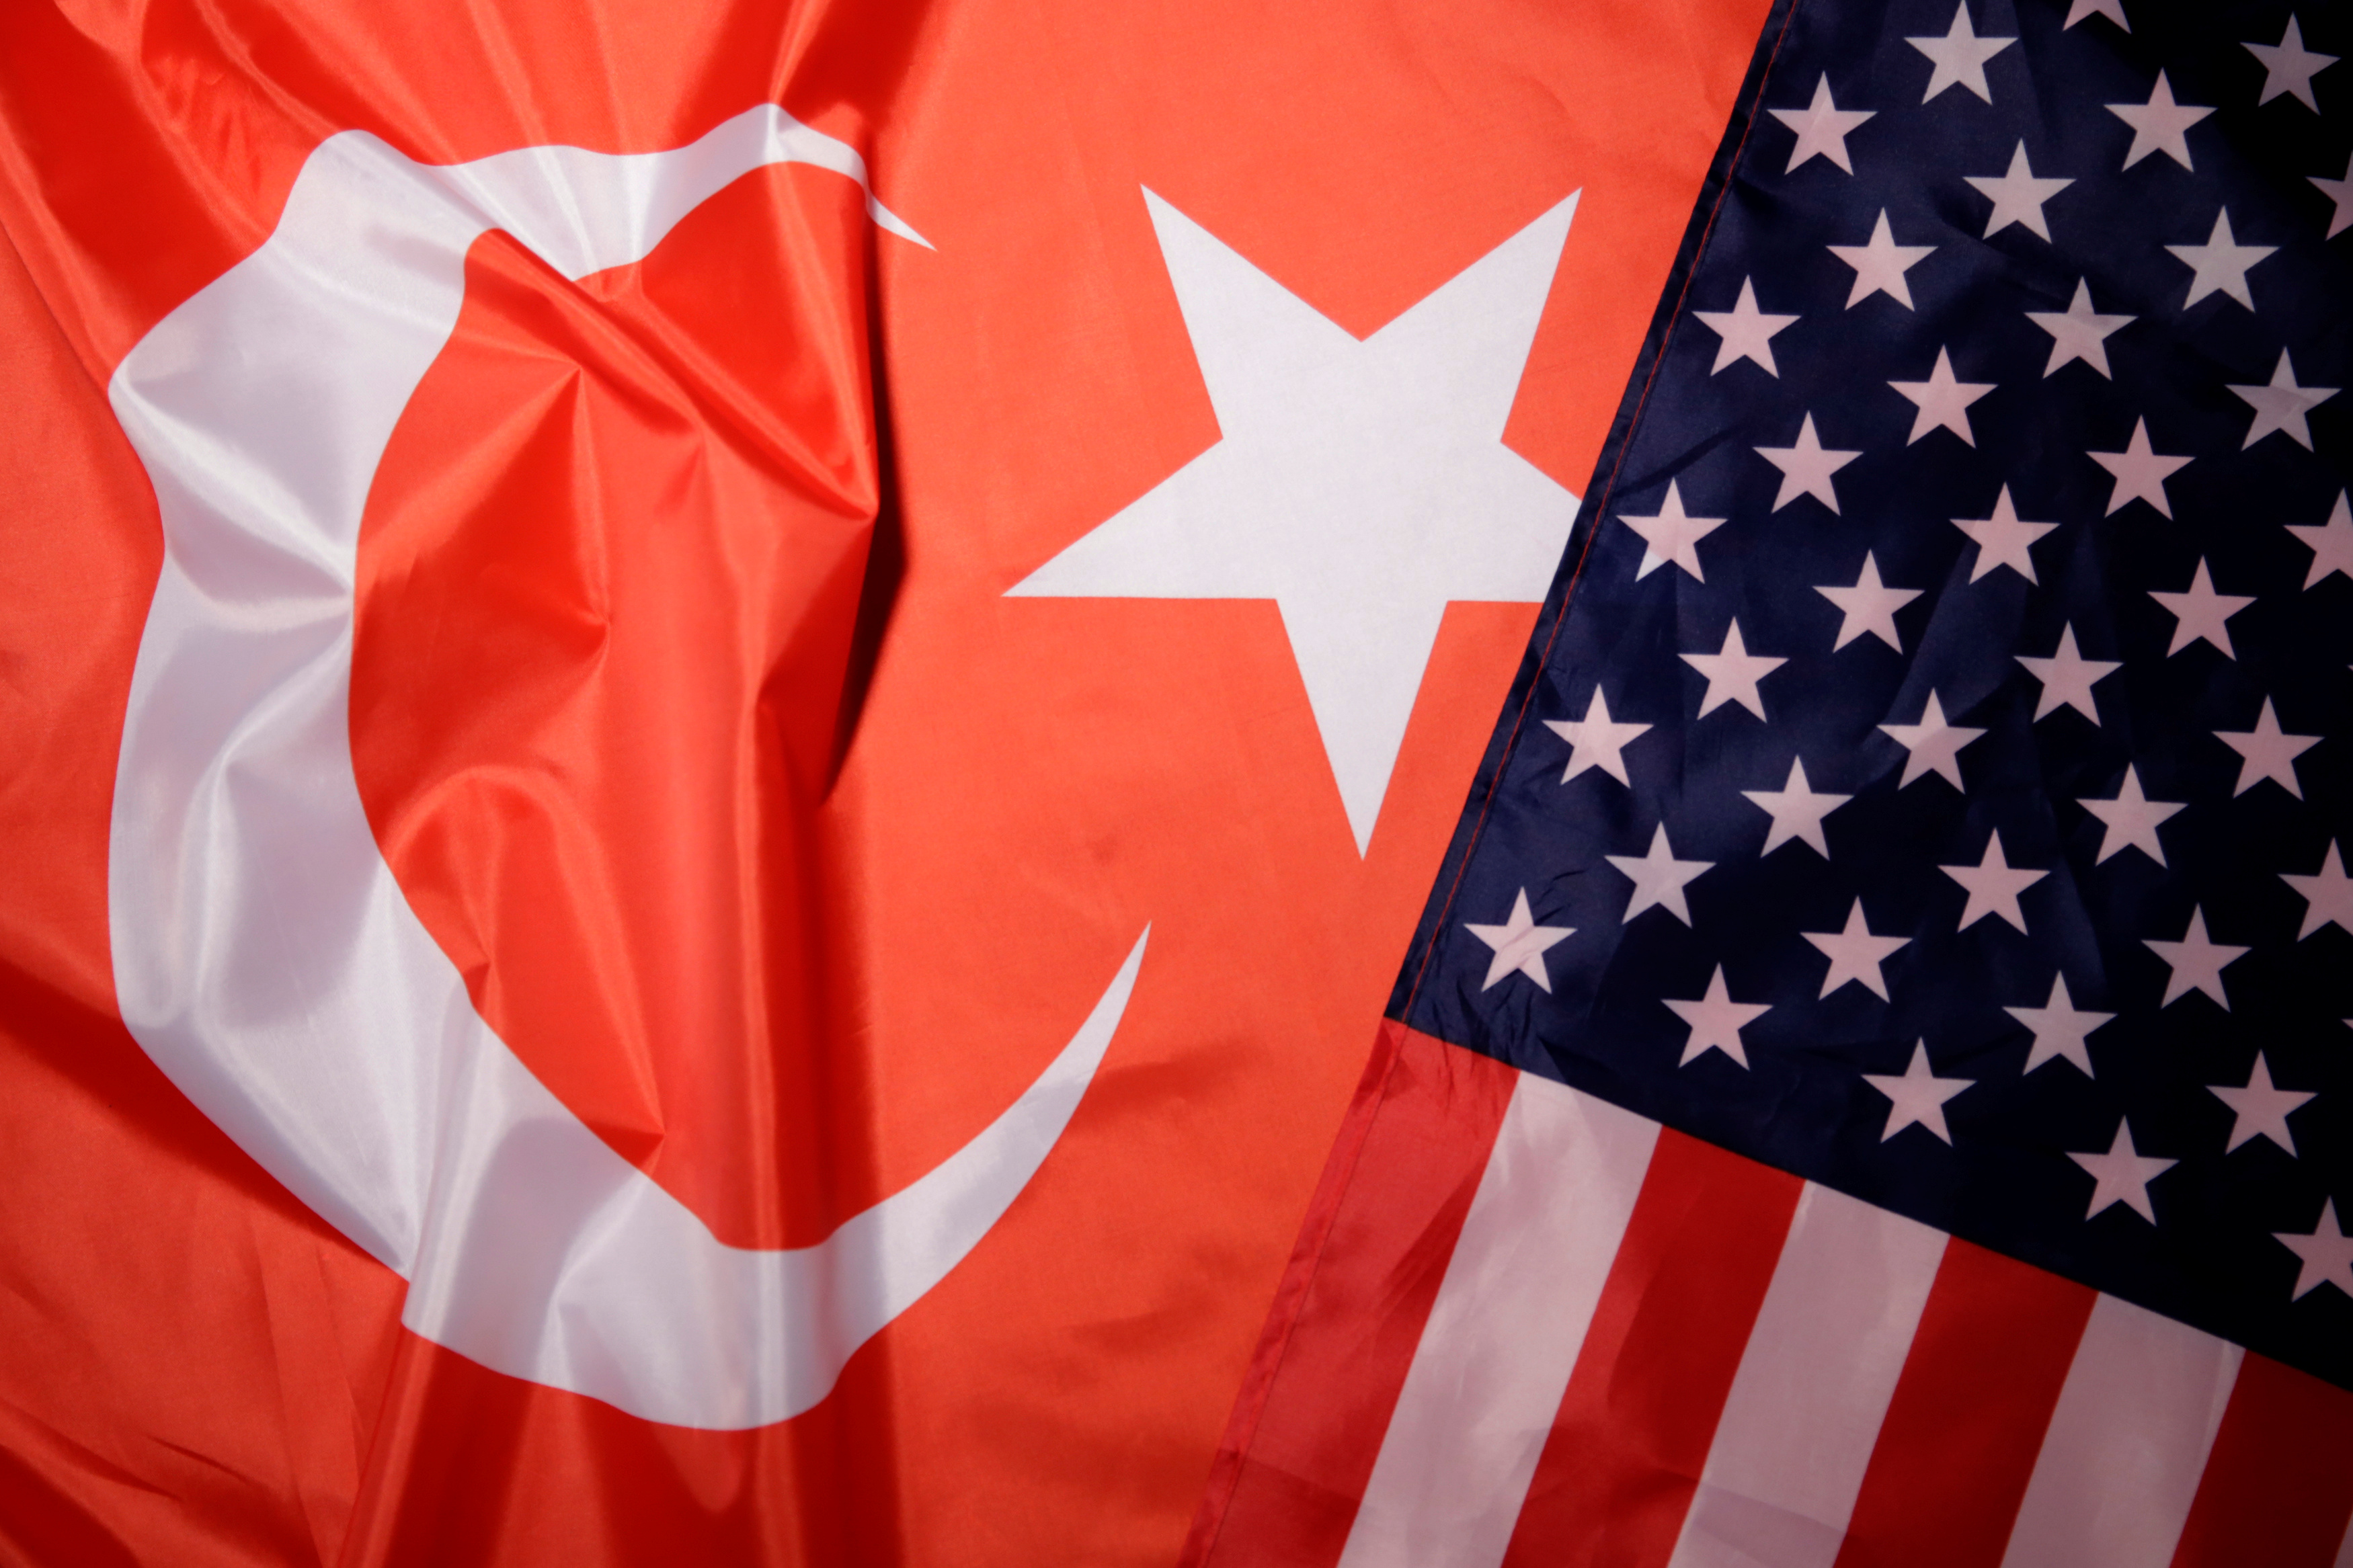 U.S. warns Turkey of sanctions impact if it buys Russian defenses